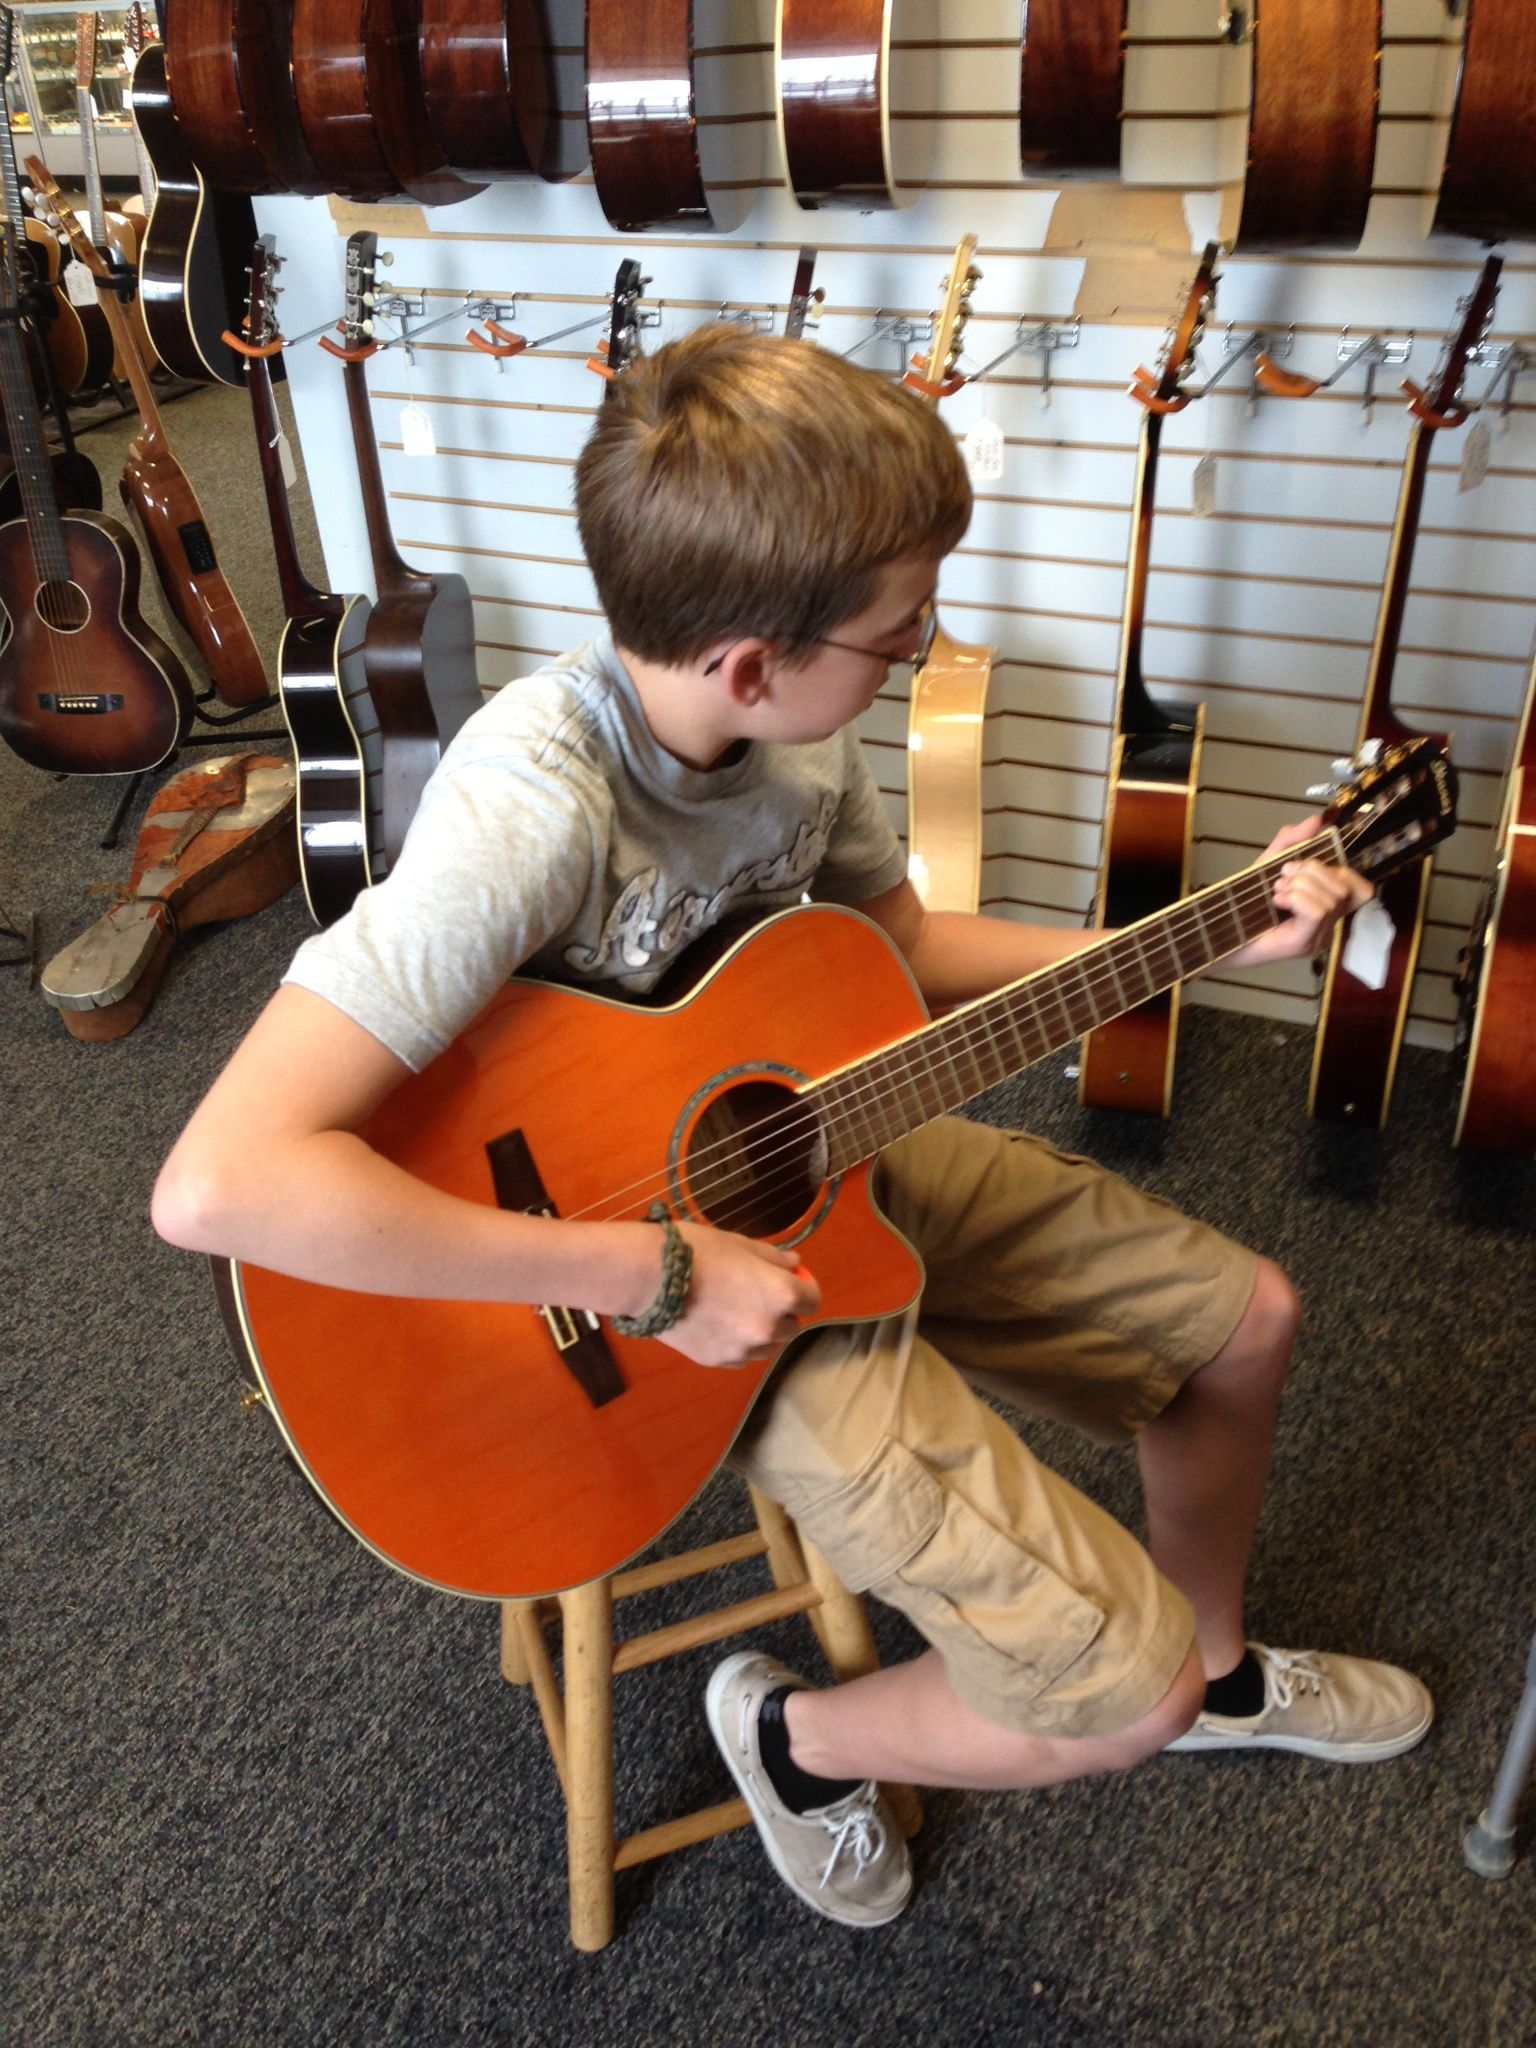 Me At The Austin Vintage Guitar Store In Austin Texas Guitar Store Vintage Guitars Guitar